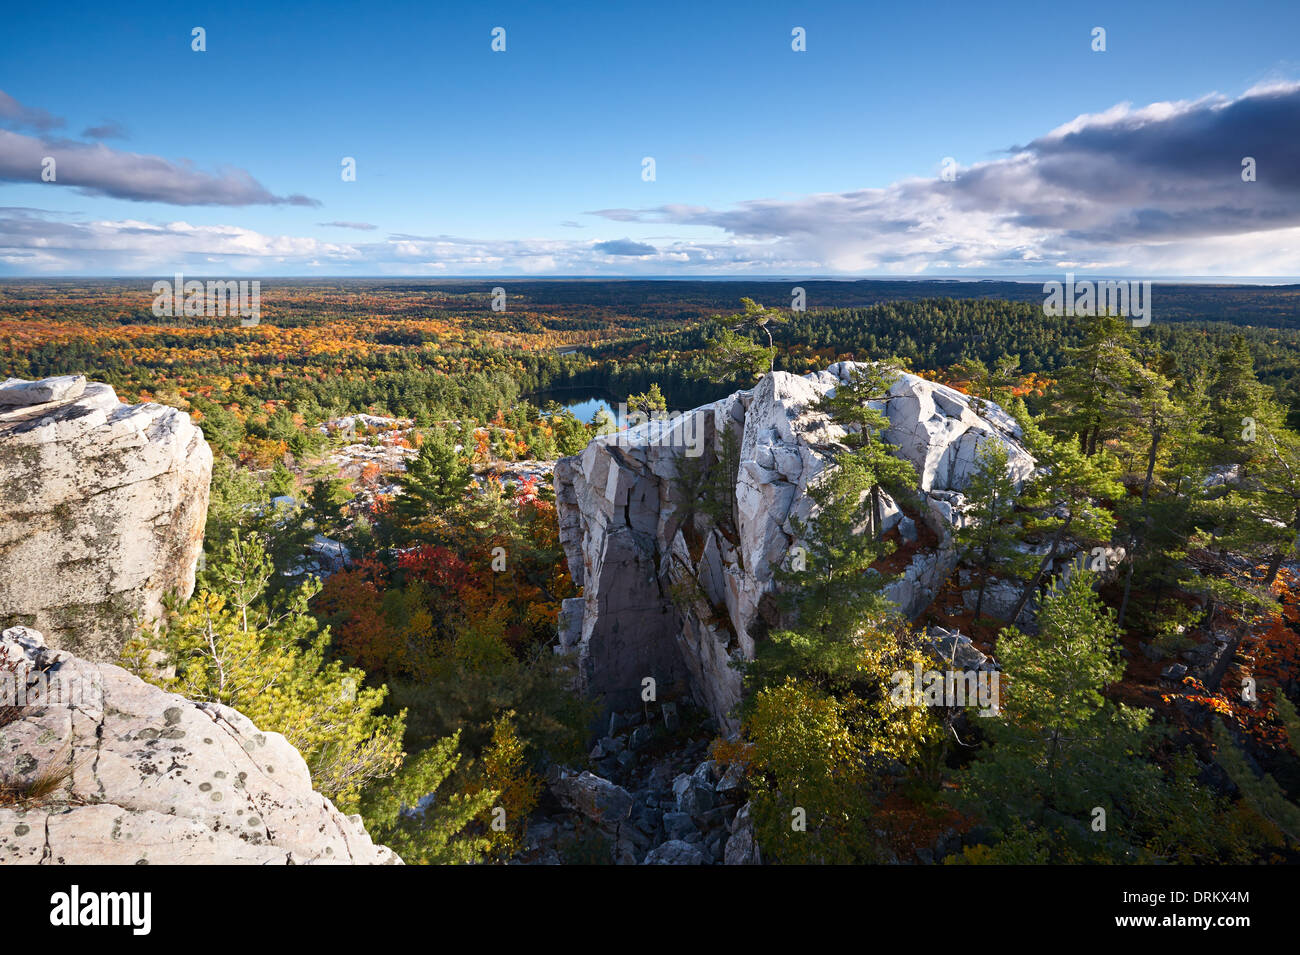 View from 'The Crack' in Killarney Provincial Park, Ontario, Canada. - Stock Image